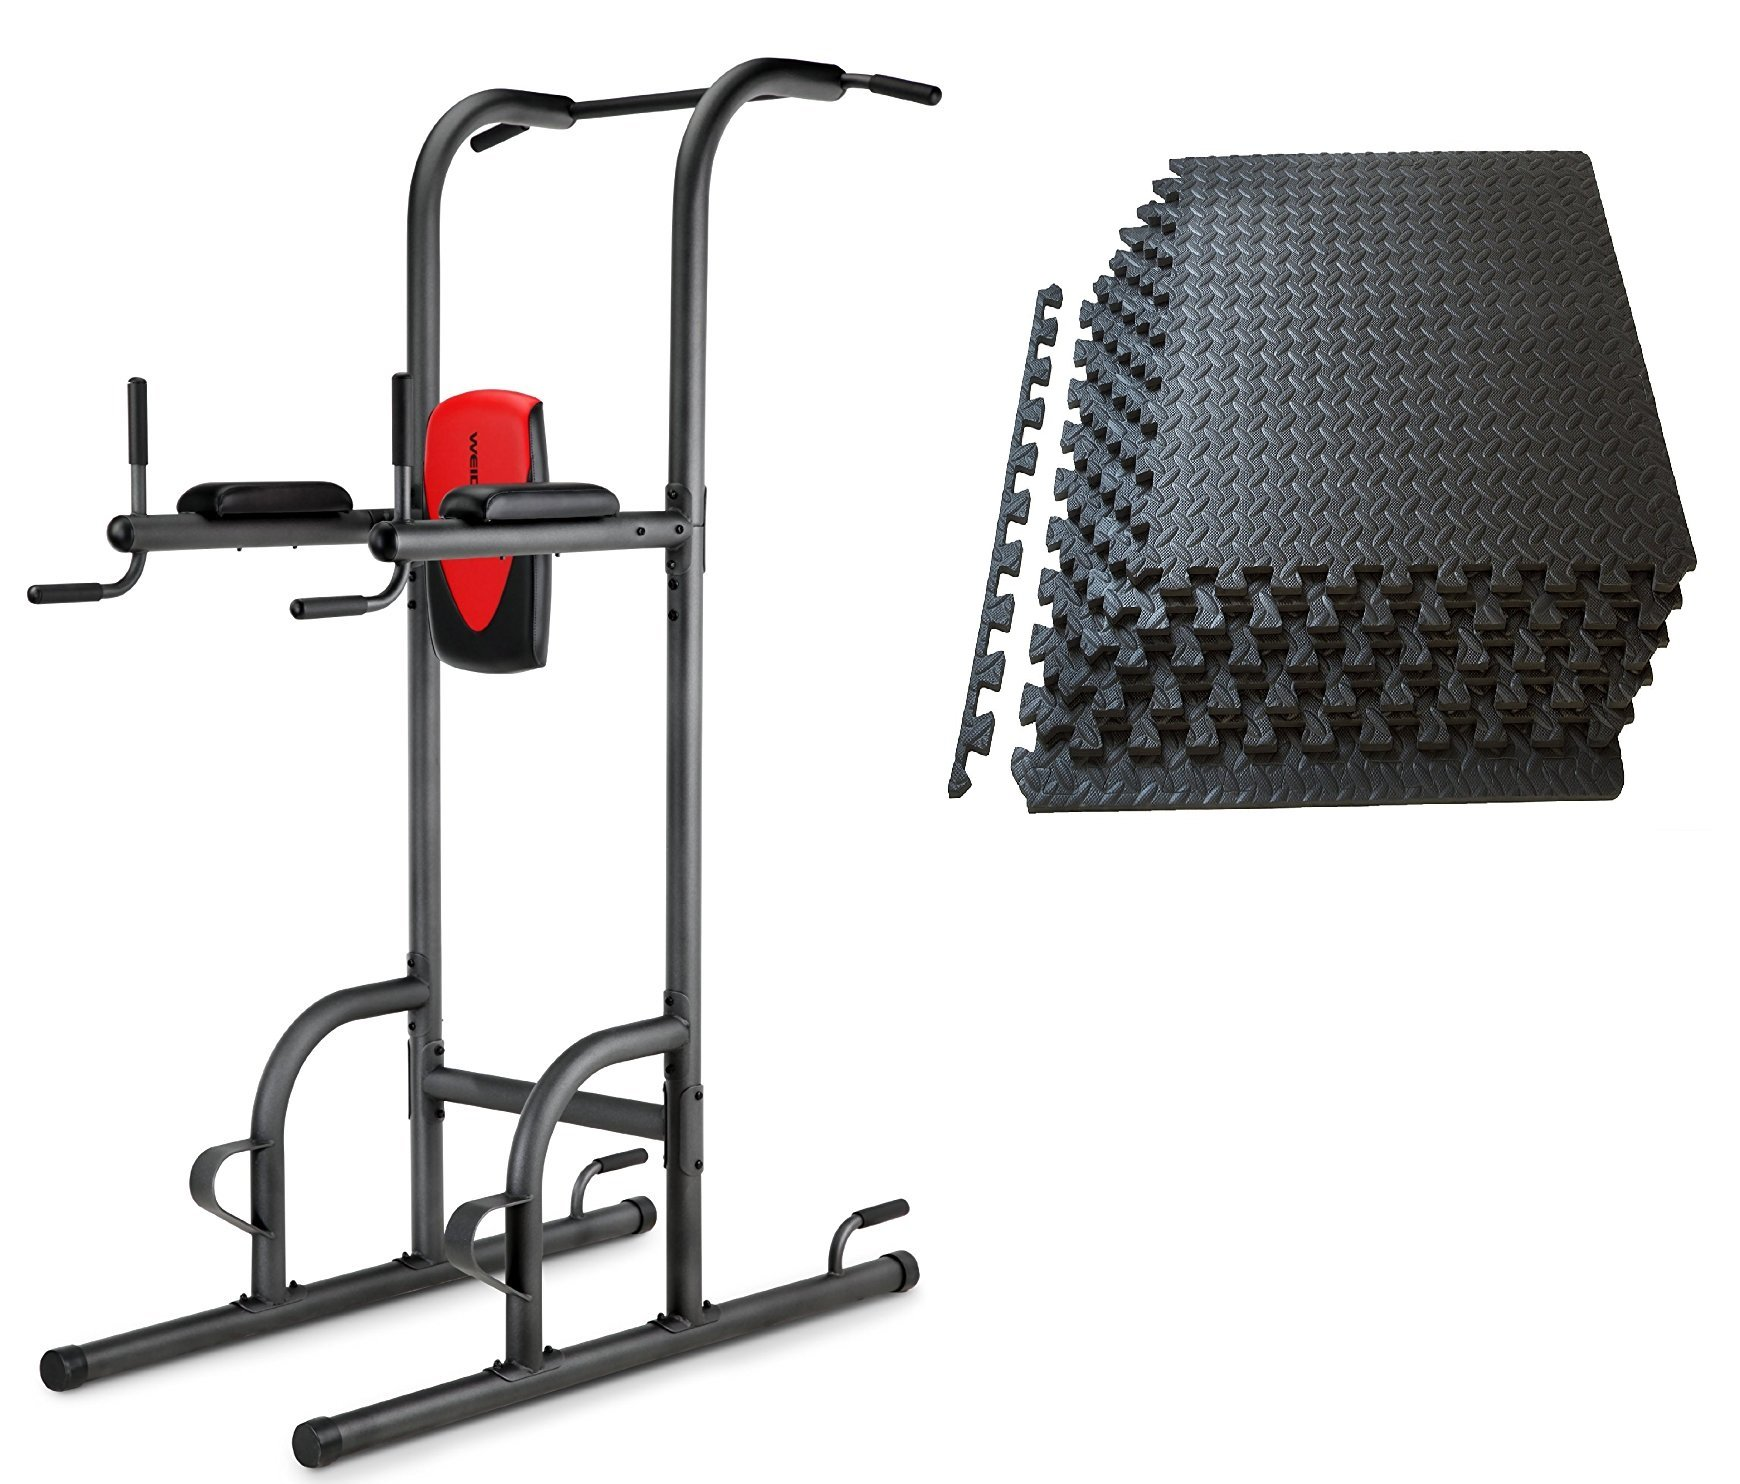 Power Tower with 6 mats helps train for Pull Ups, Knee Raises, Dips, and Push Ups by WeiderGold'sGym